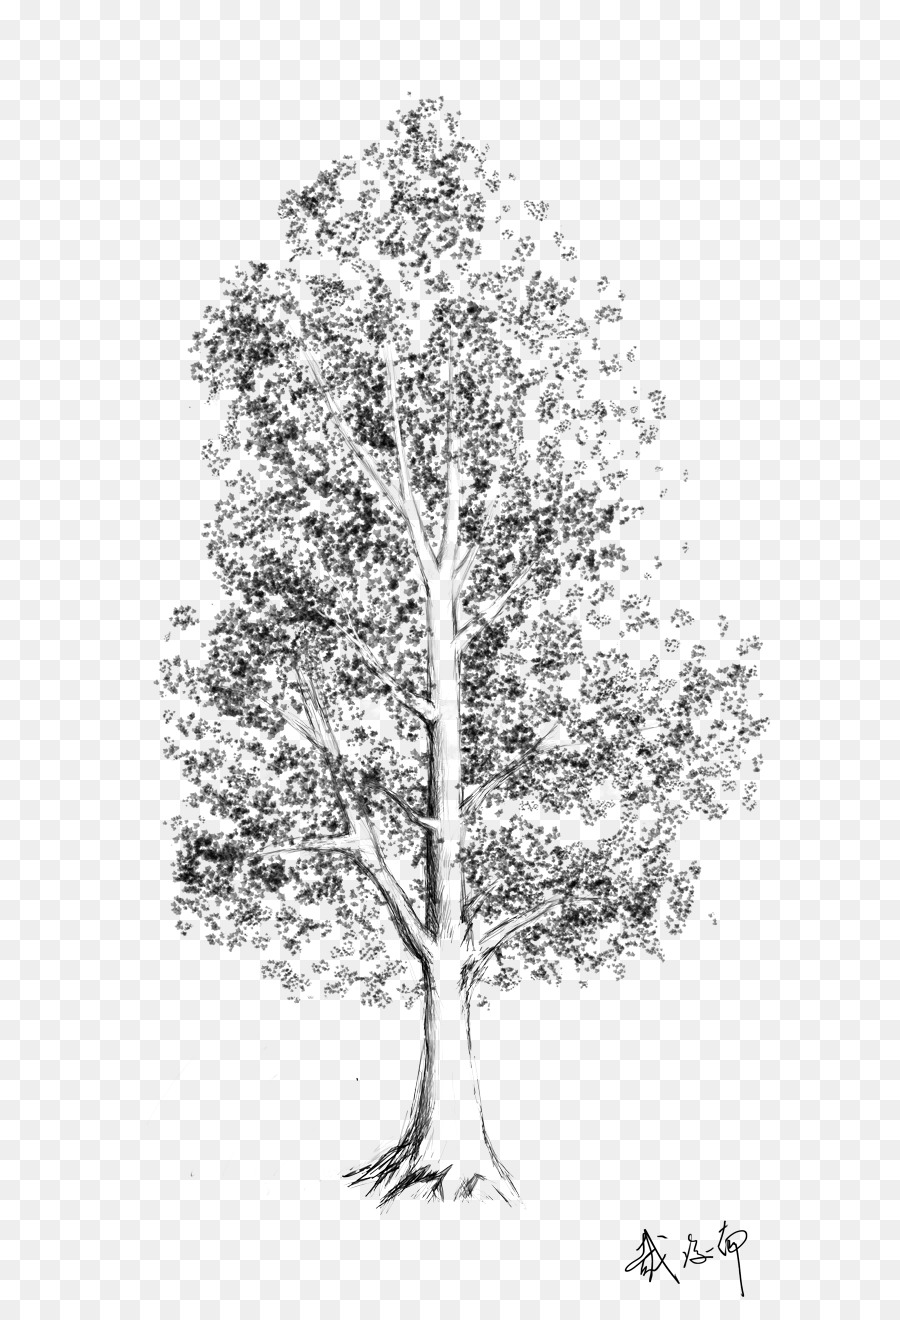 Tree Sketch Png (113+ images in Collection) Page 2.